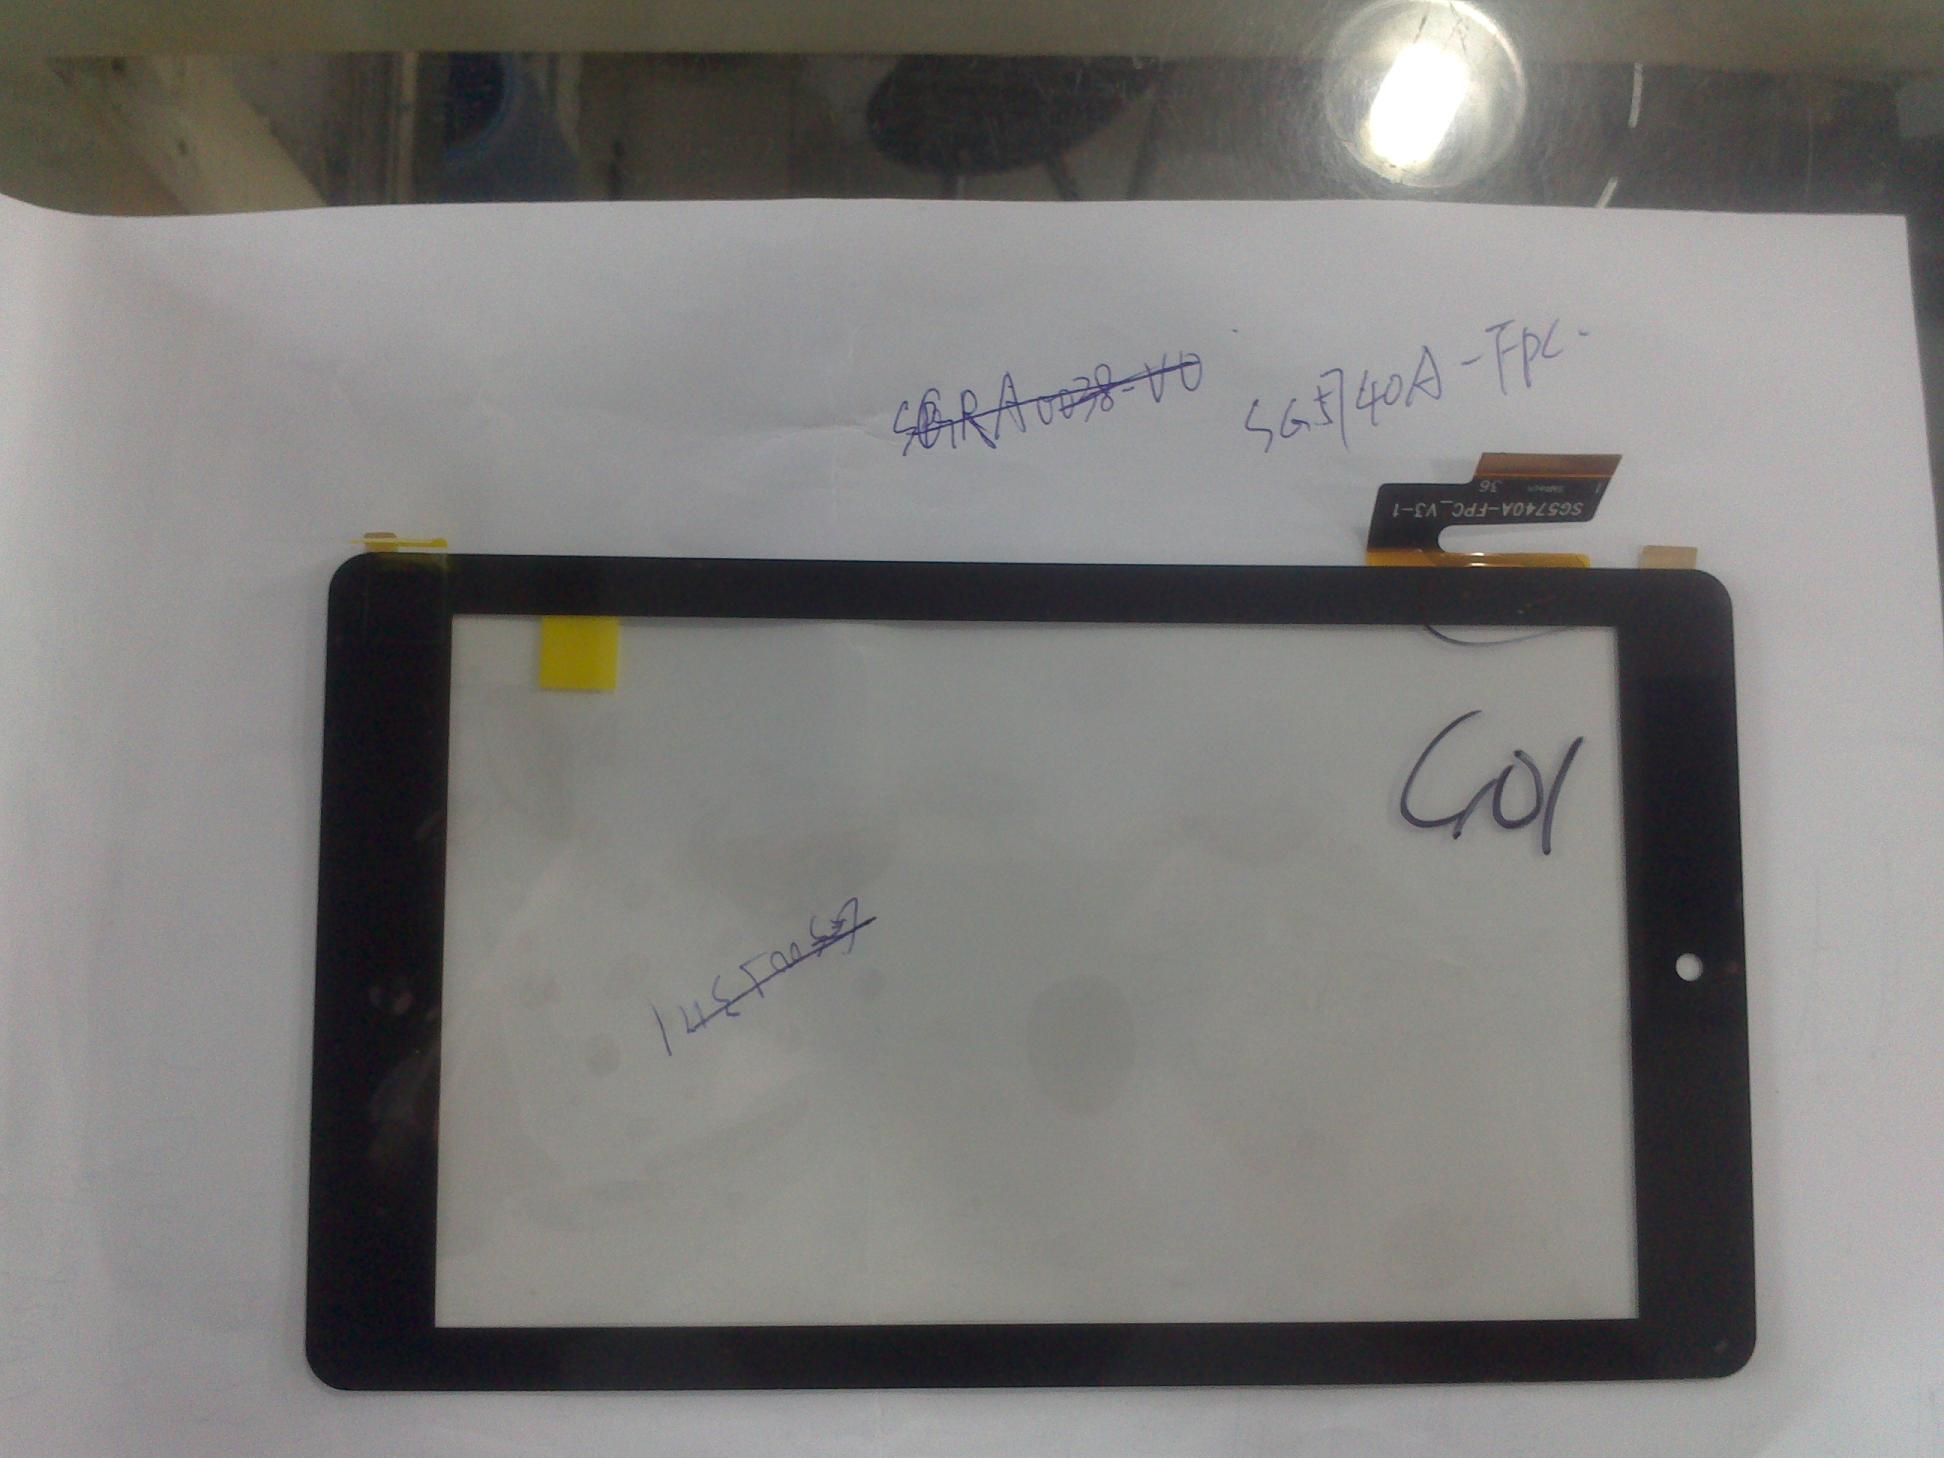 Запчасти для мобильных телефонов 7 inch new handwriting Tablet capacitive touch screen screen screen number is sg5740a/fpc_v3/1 SG5740A-FPC_V3-1 new 10 1 inch for asus memo pad smart 10 me301 me301t 5280n fpc 1 rev 4 tablet touch screen panel glass free shipping